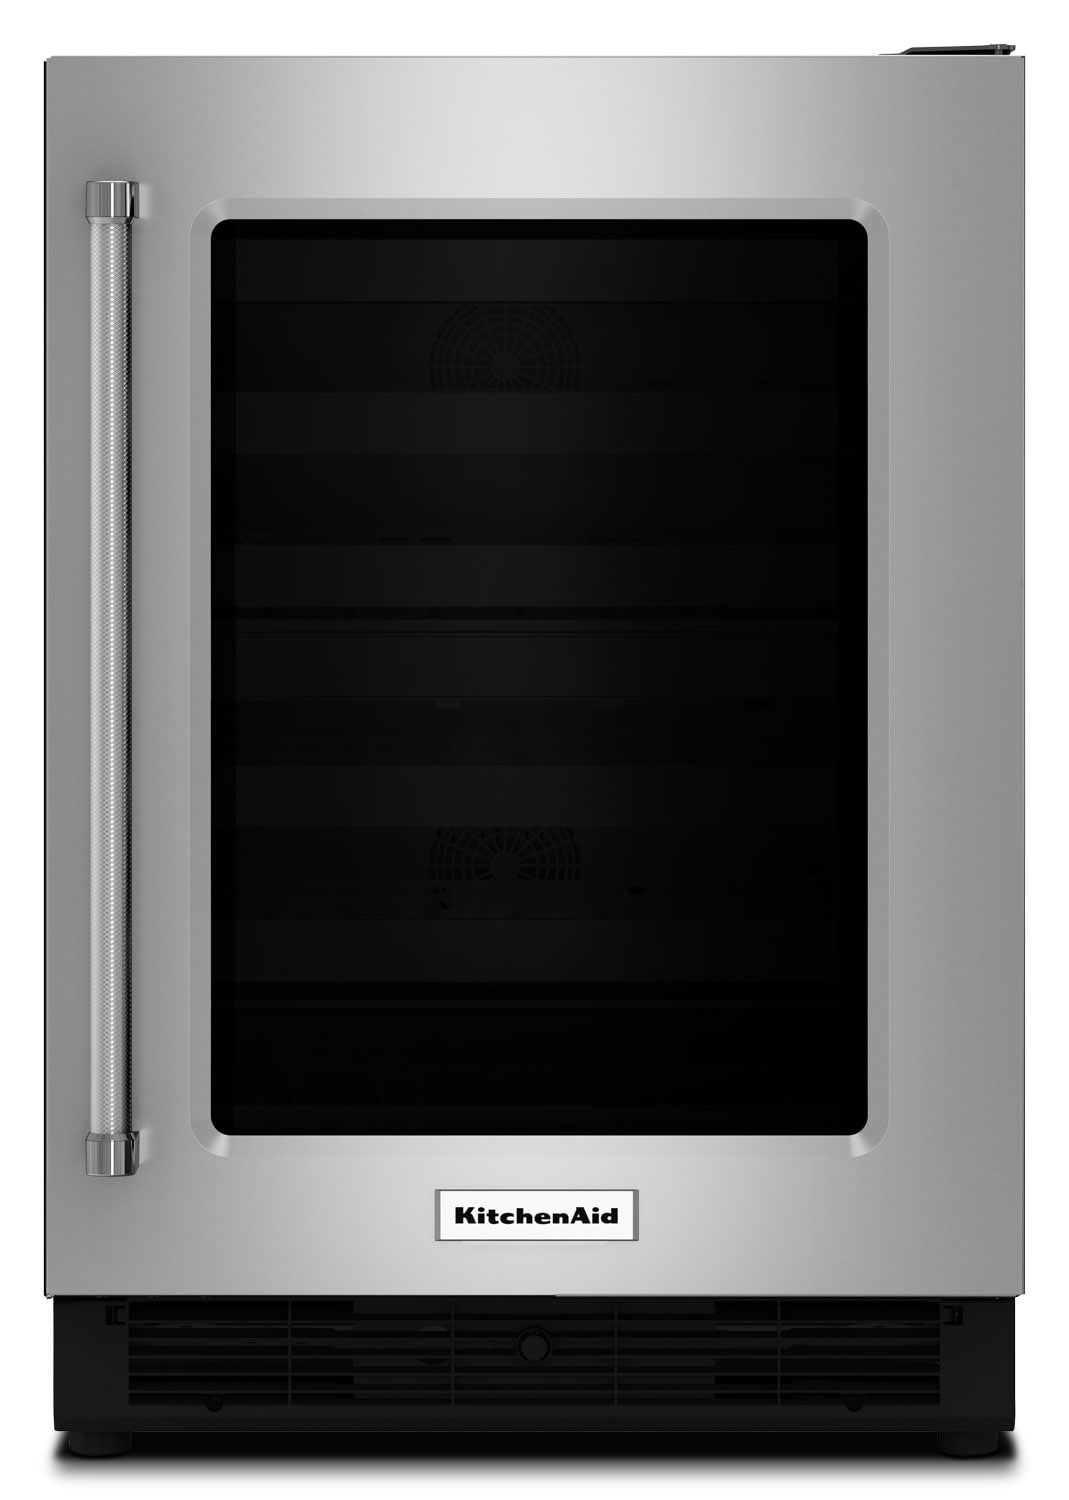 KitchenAid 5.1 Cu. Ft. Glass-Door Undercounter Refrigerator with Right-Door Swing – Stainless Steel